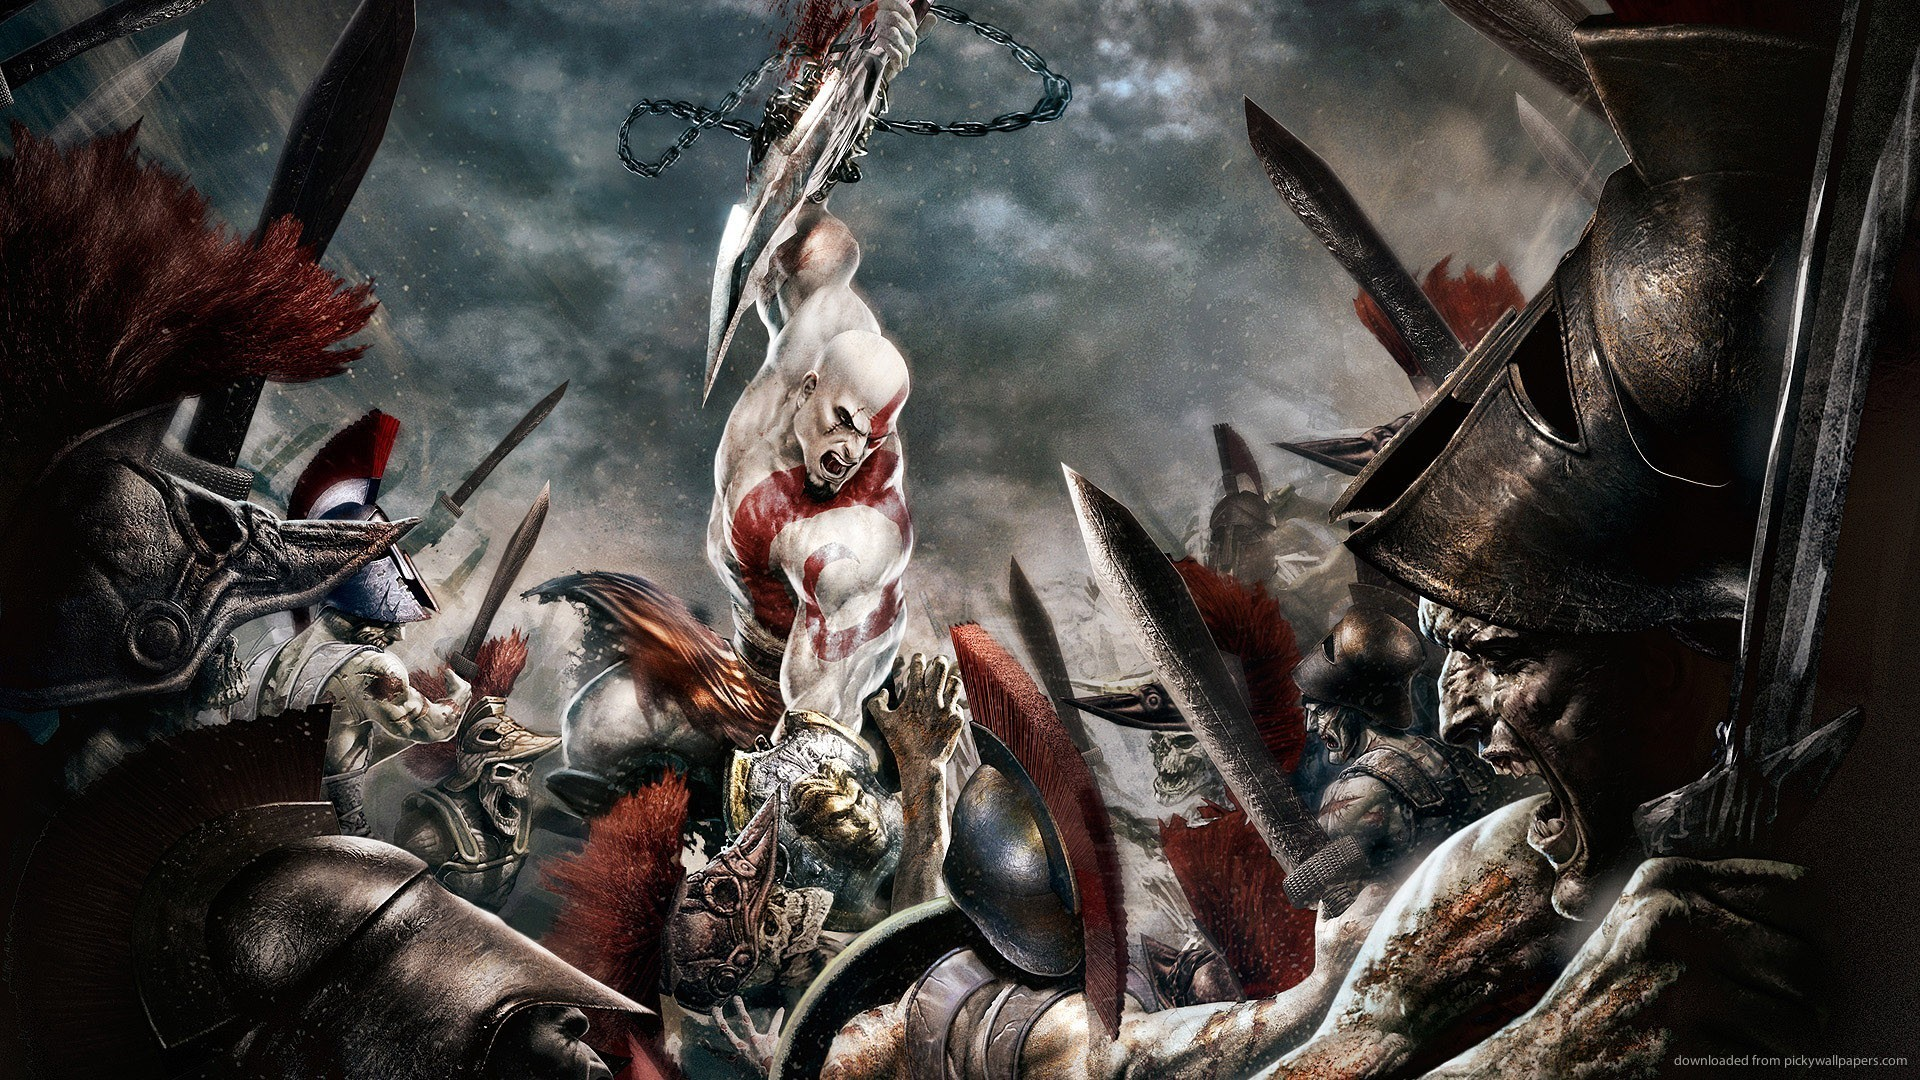 Download 1920x1080 Kratos Epic Battle Wallpaper 1920x1080